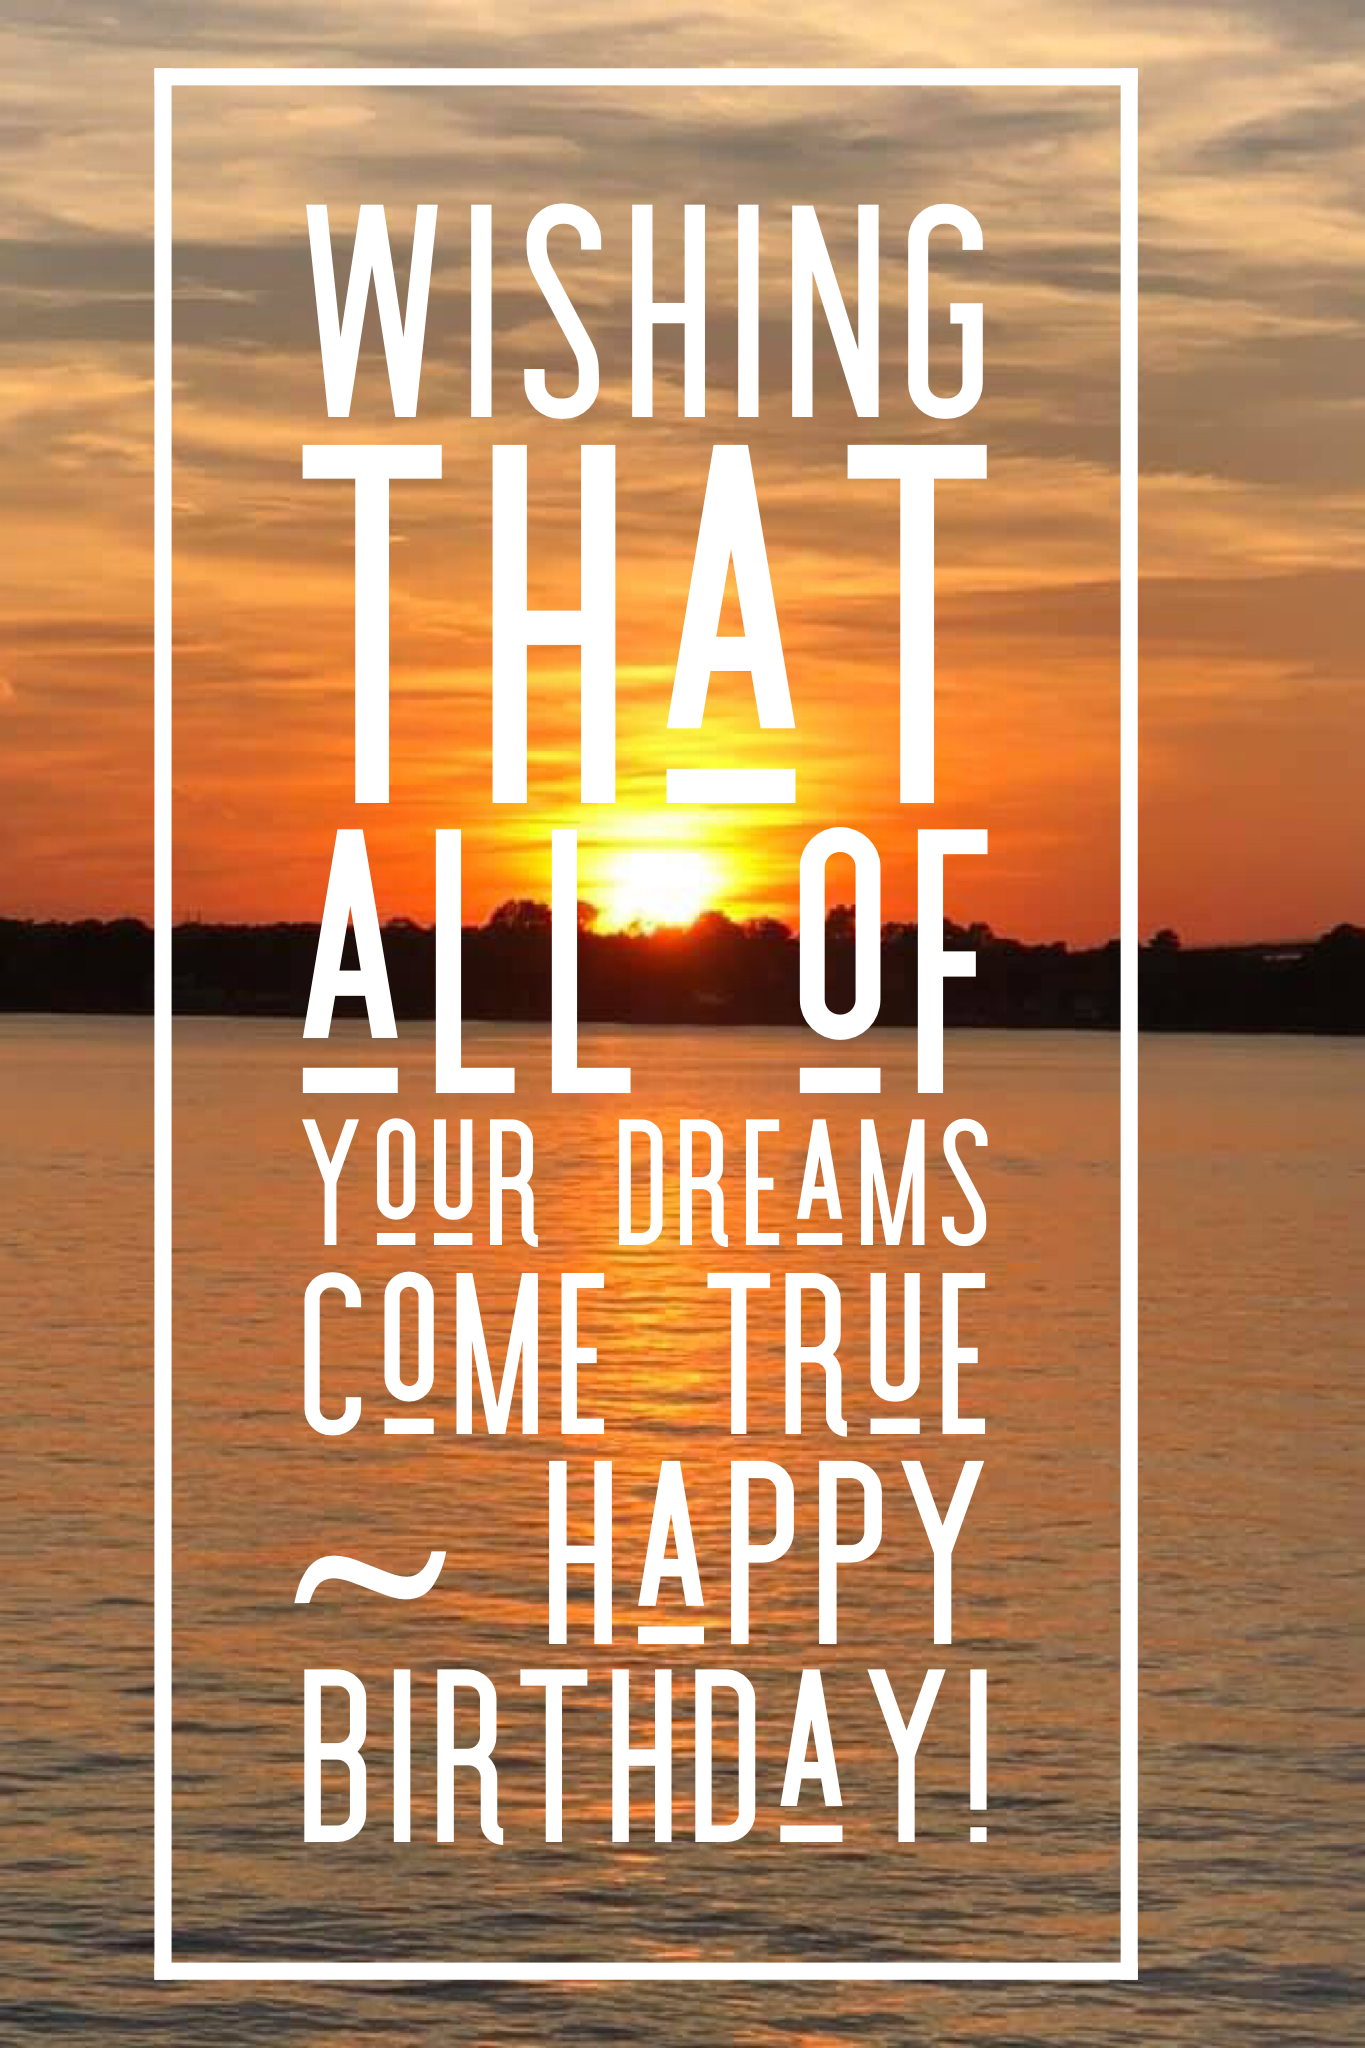 Pin by Sara Kuehl on Happy Birthday Images and Quotes